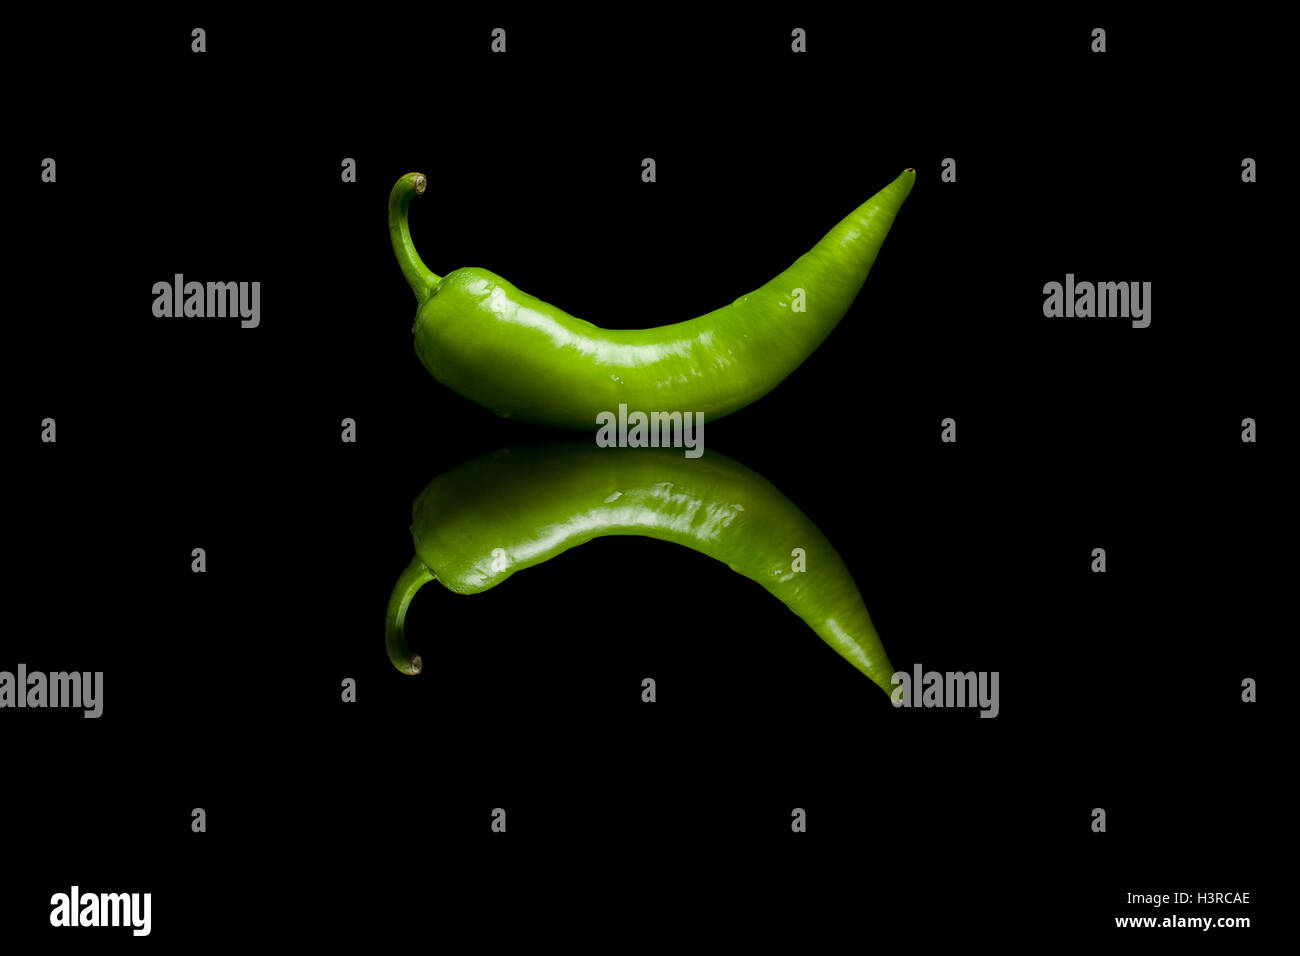 Green pepper isolated on black reflective background - Stock Image